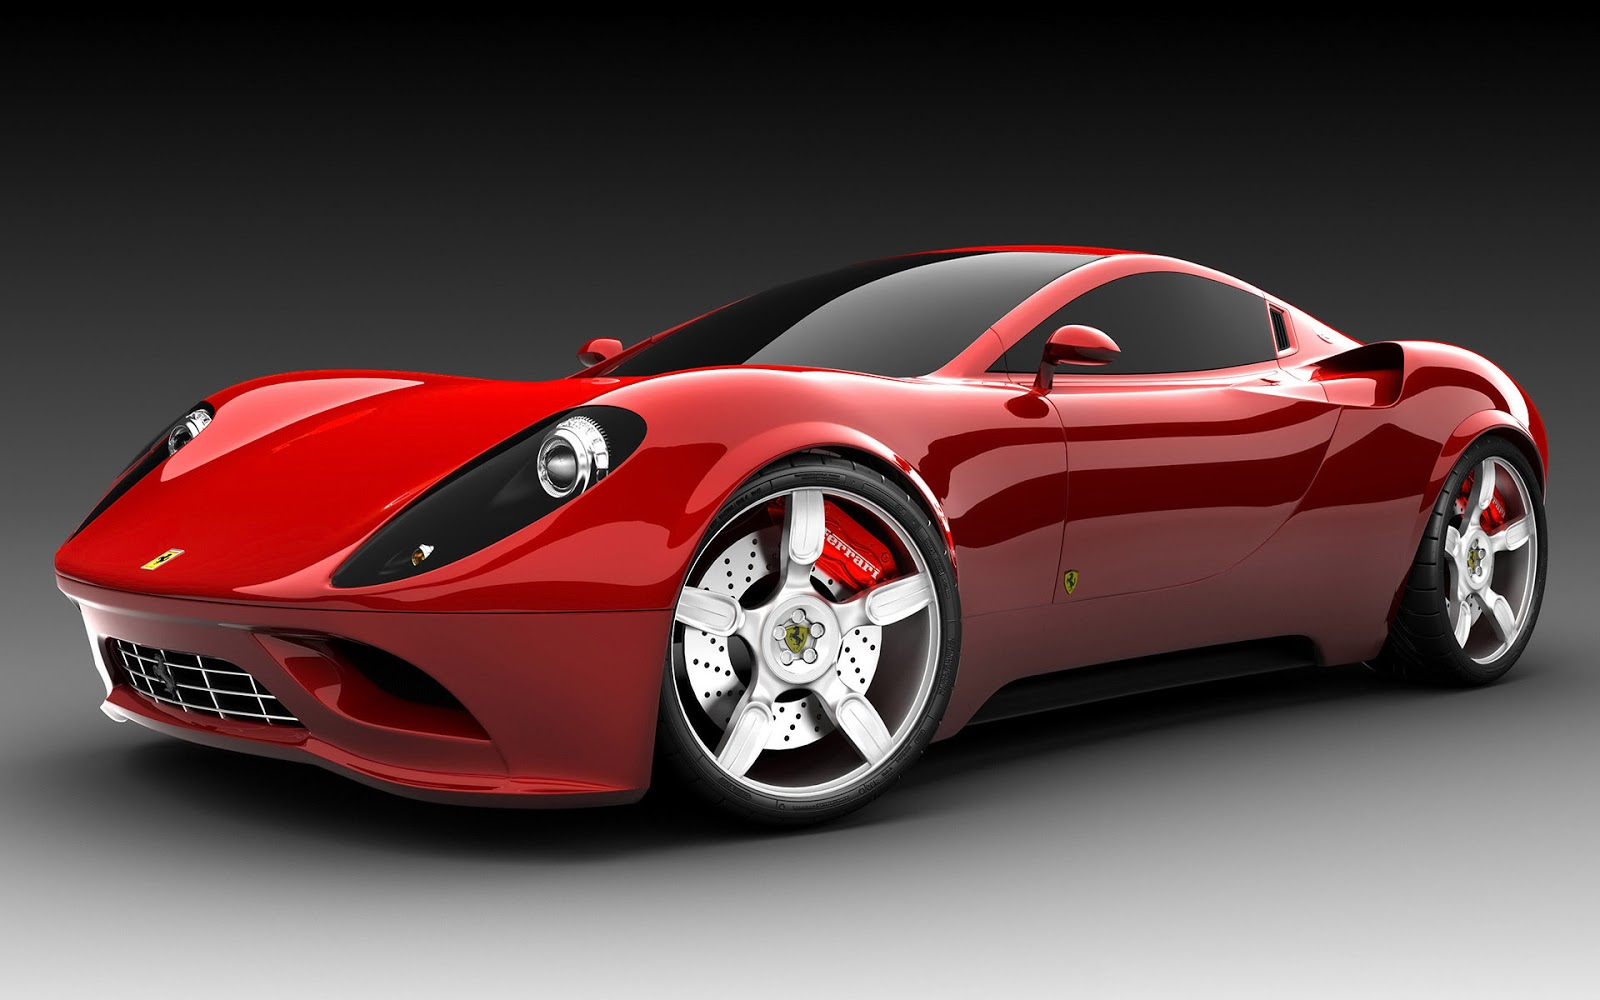 Ferrari Car HD Wallpaper for iPhone